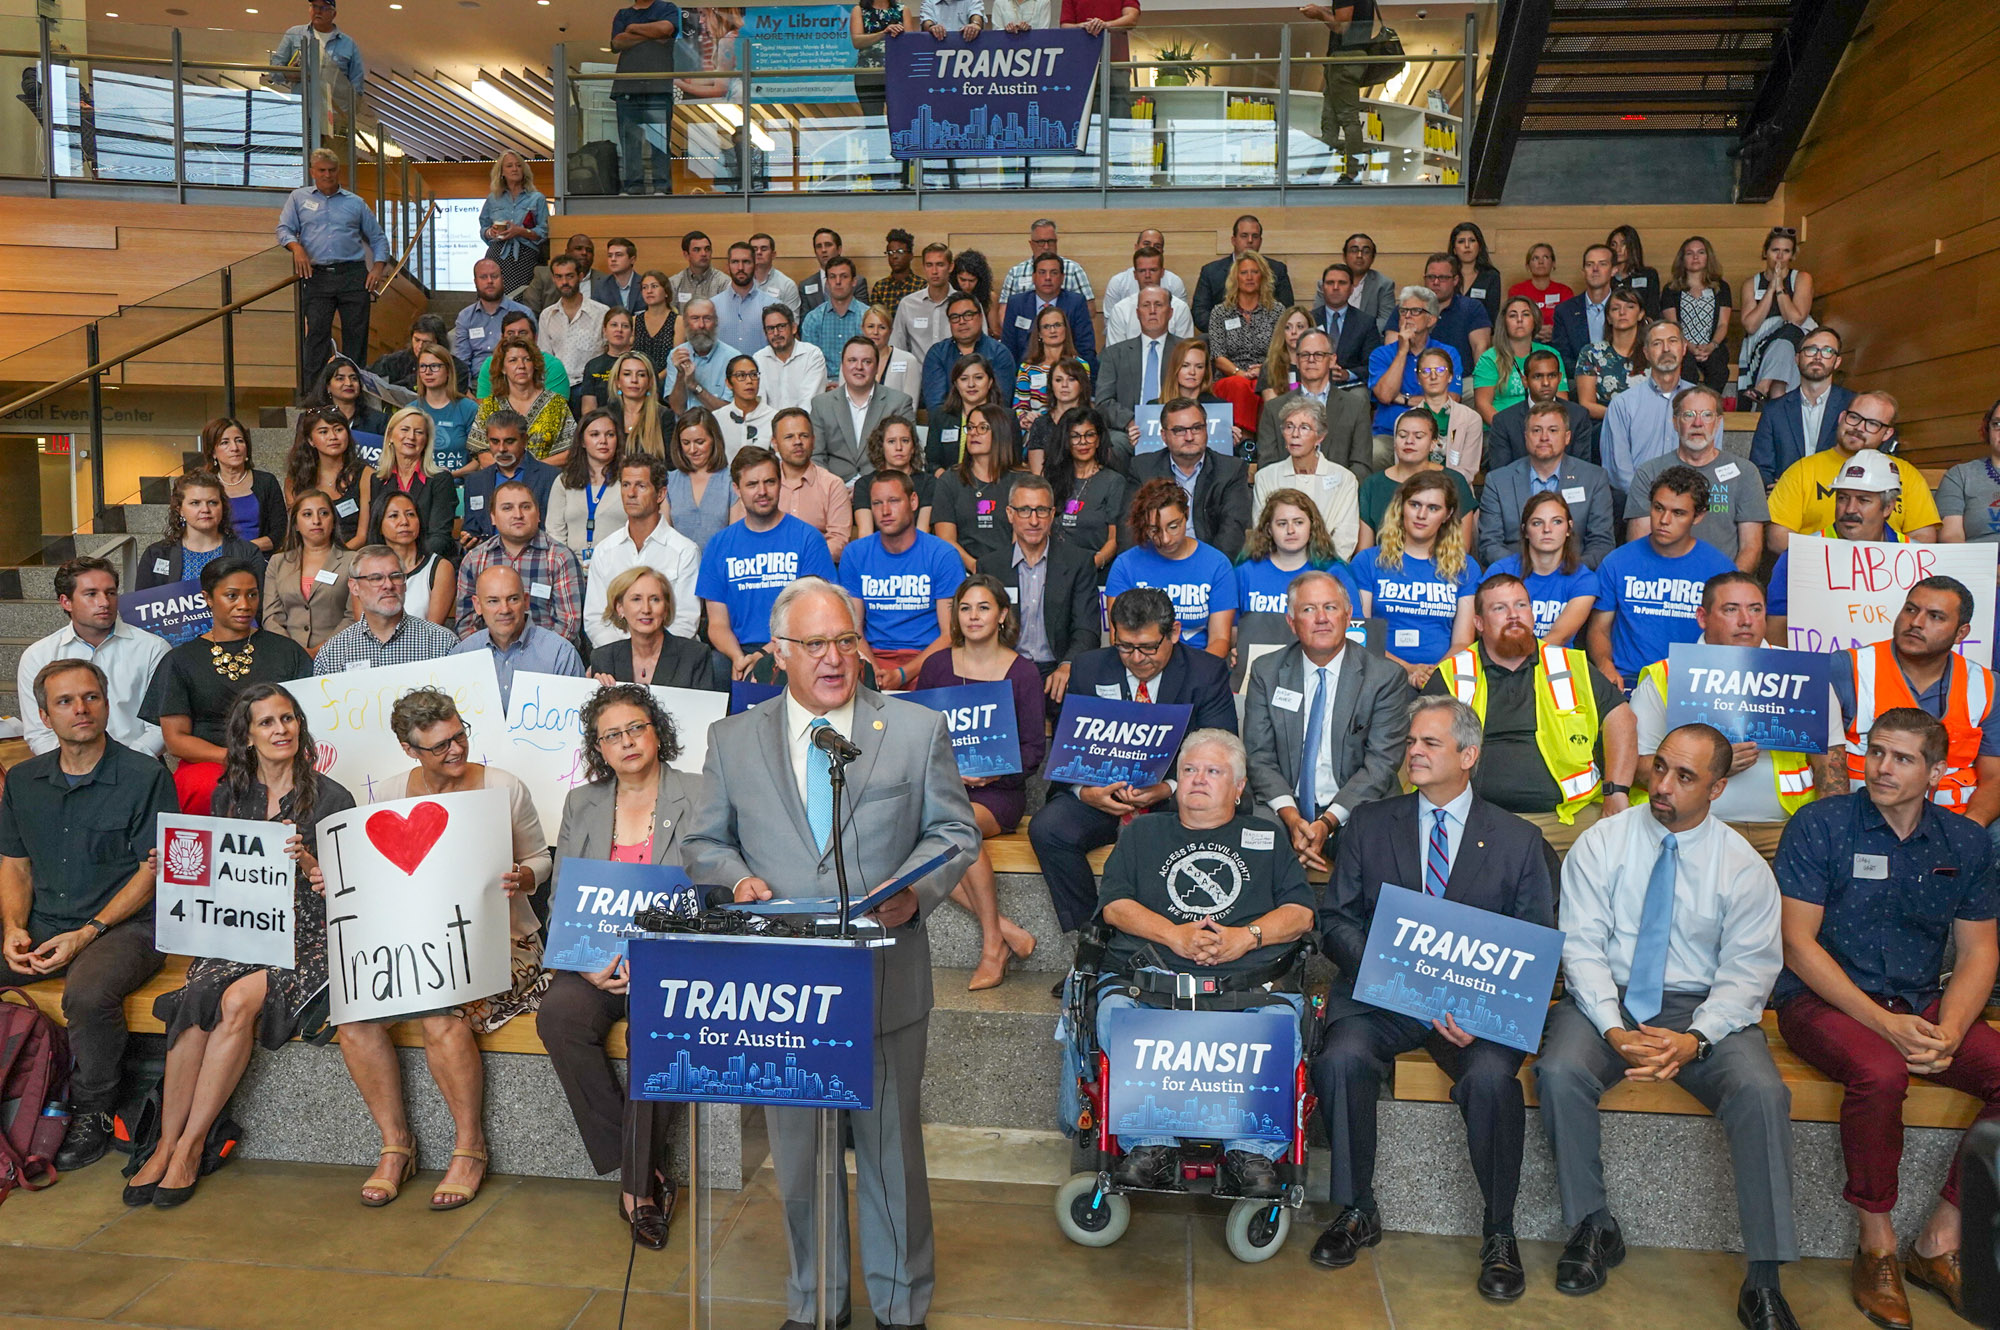 Transit for Austin is a broad  coalition  of Austin civic organizations, businesses, and community advocates who support a comprehensive rapid transit system for all of us.